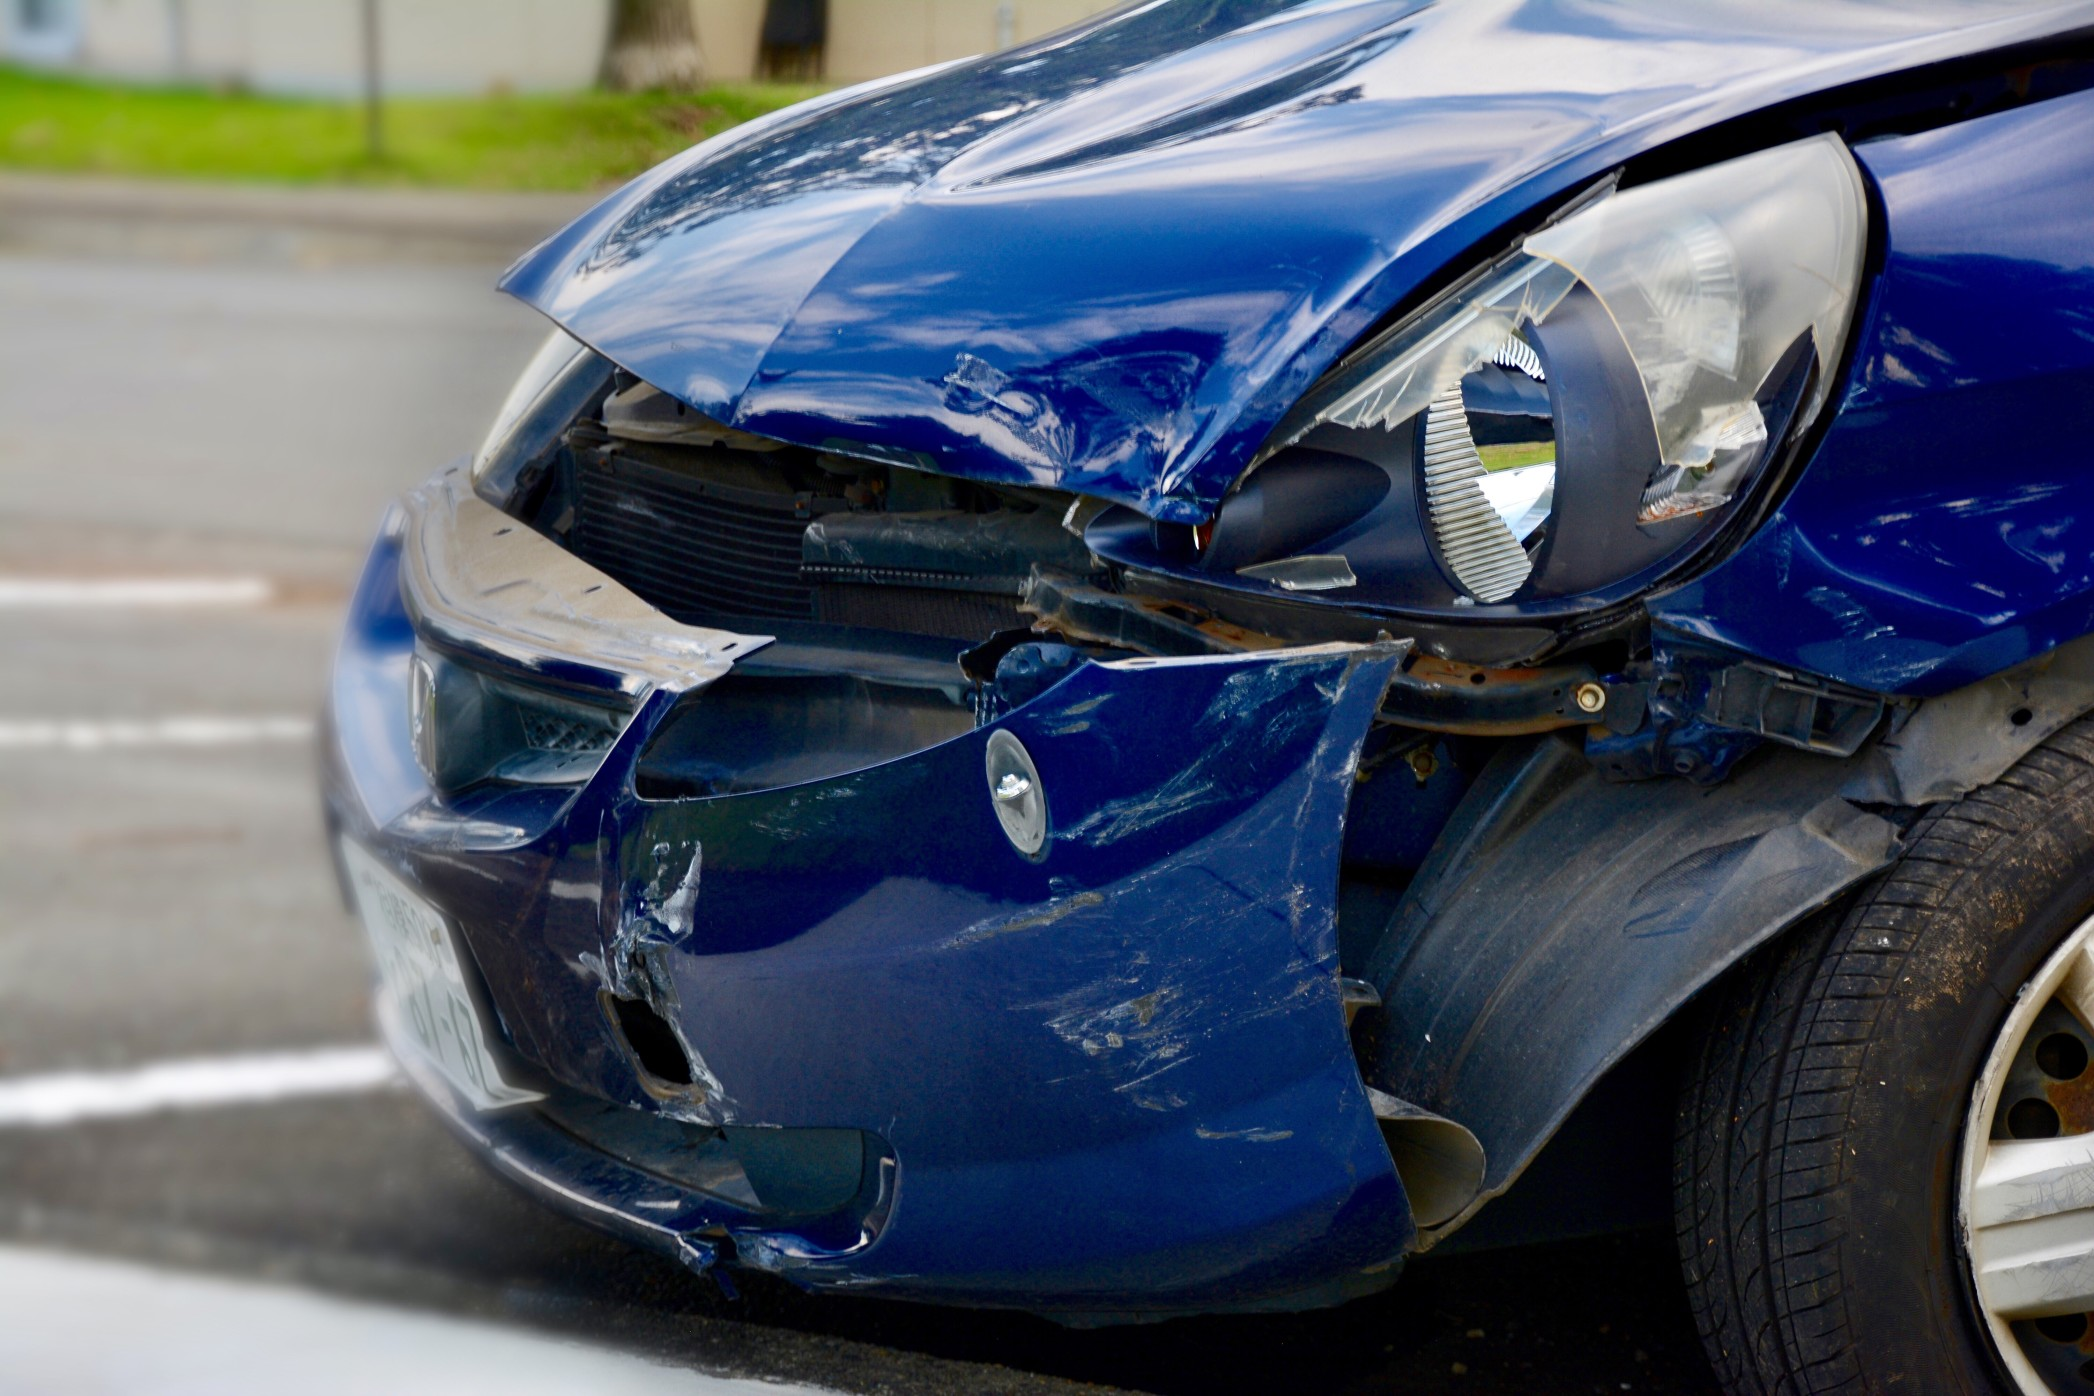 Talk to a Personal Injury Law Firm After a Serious Car Accident